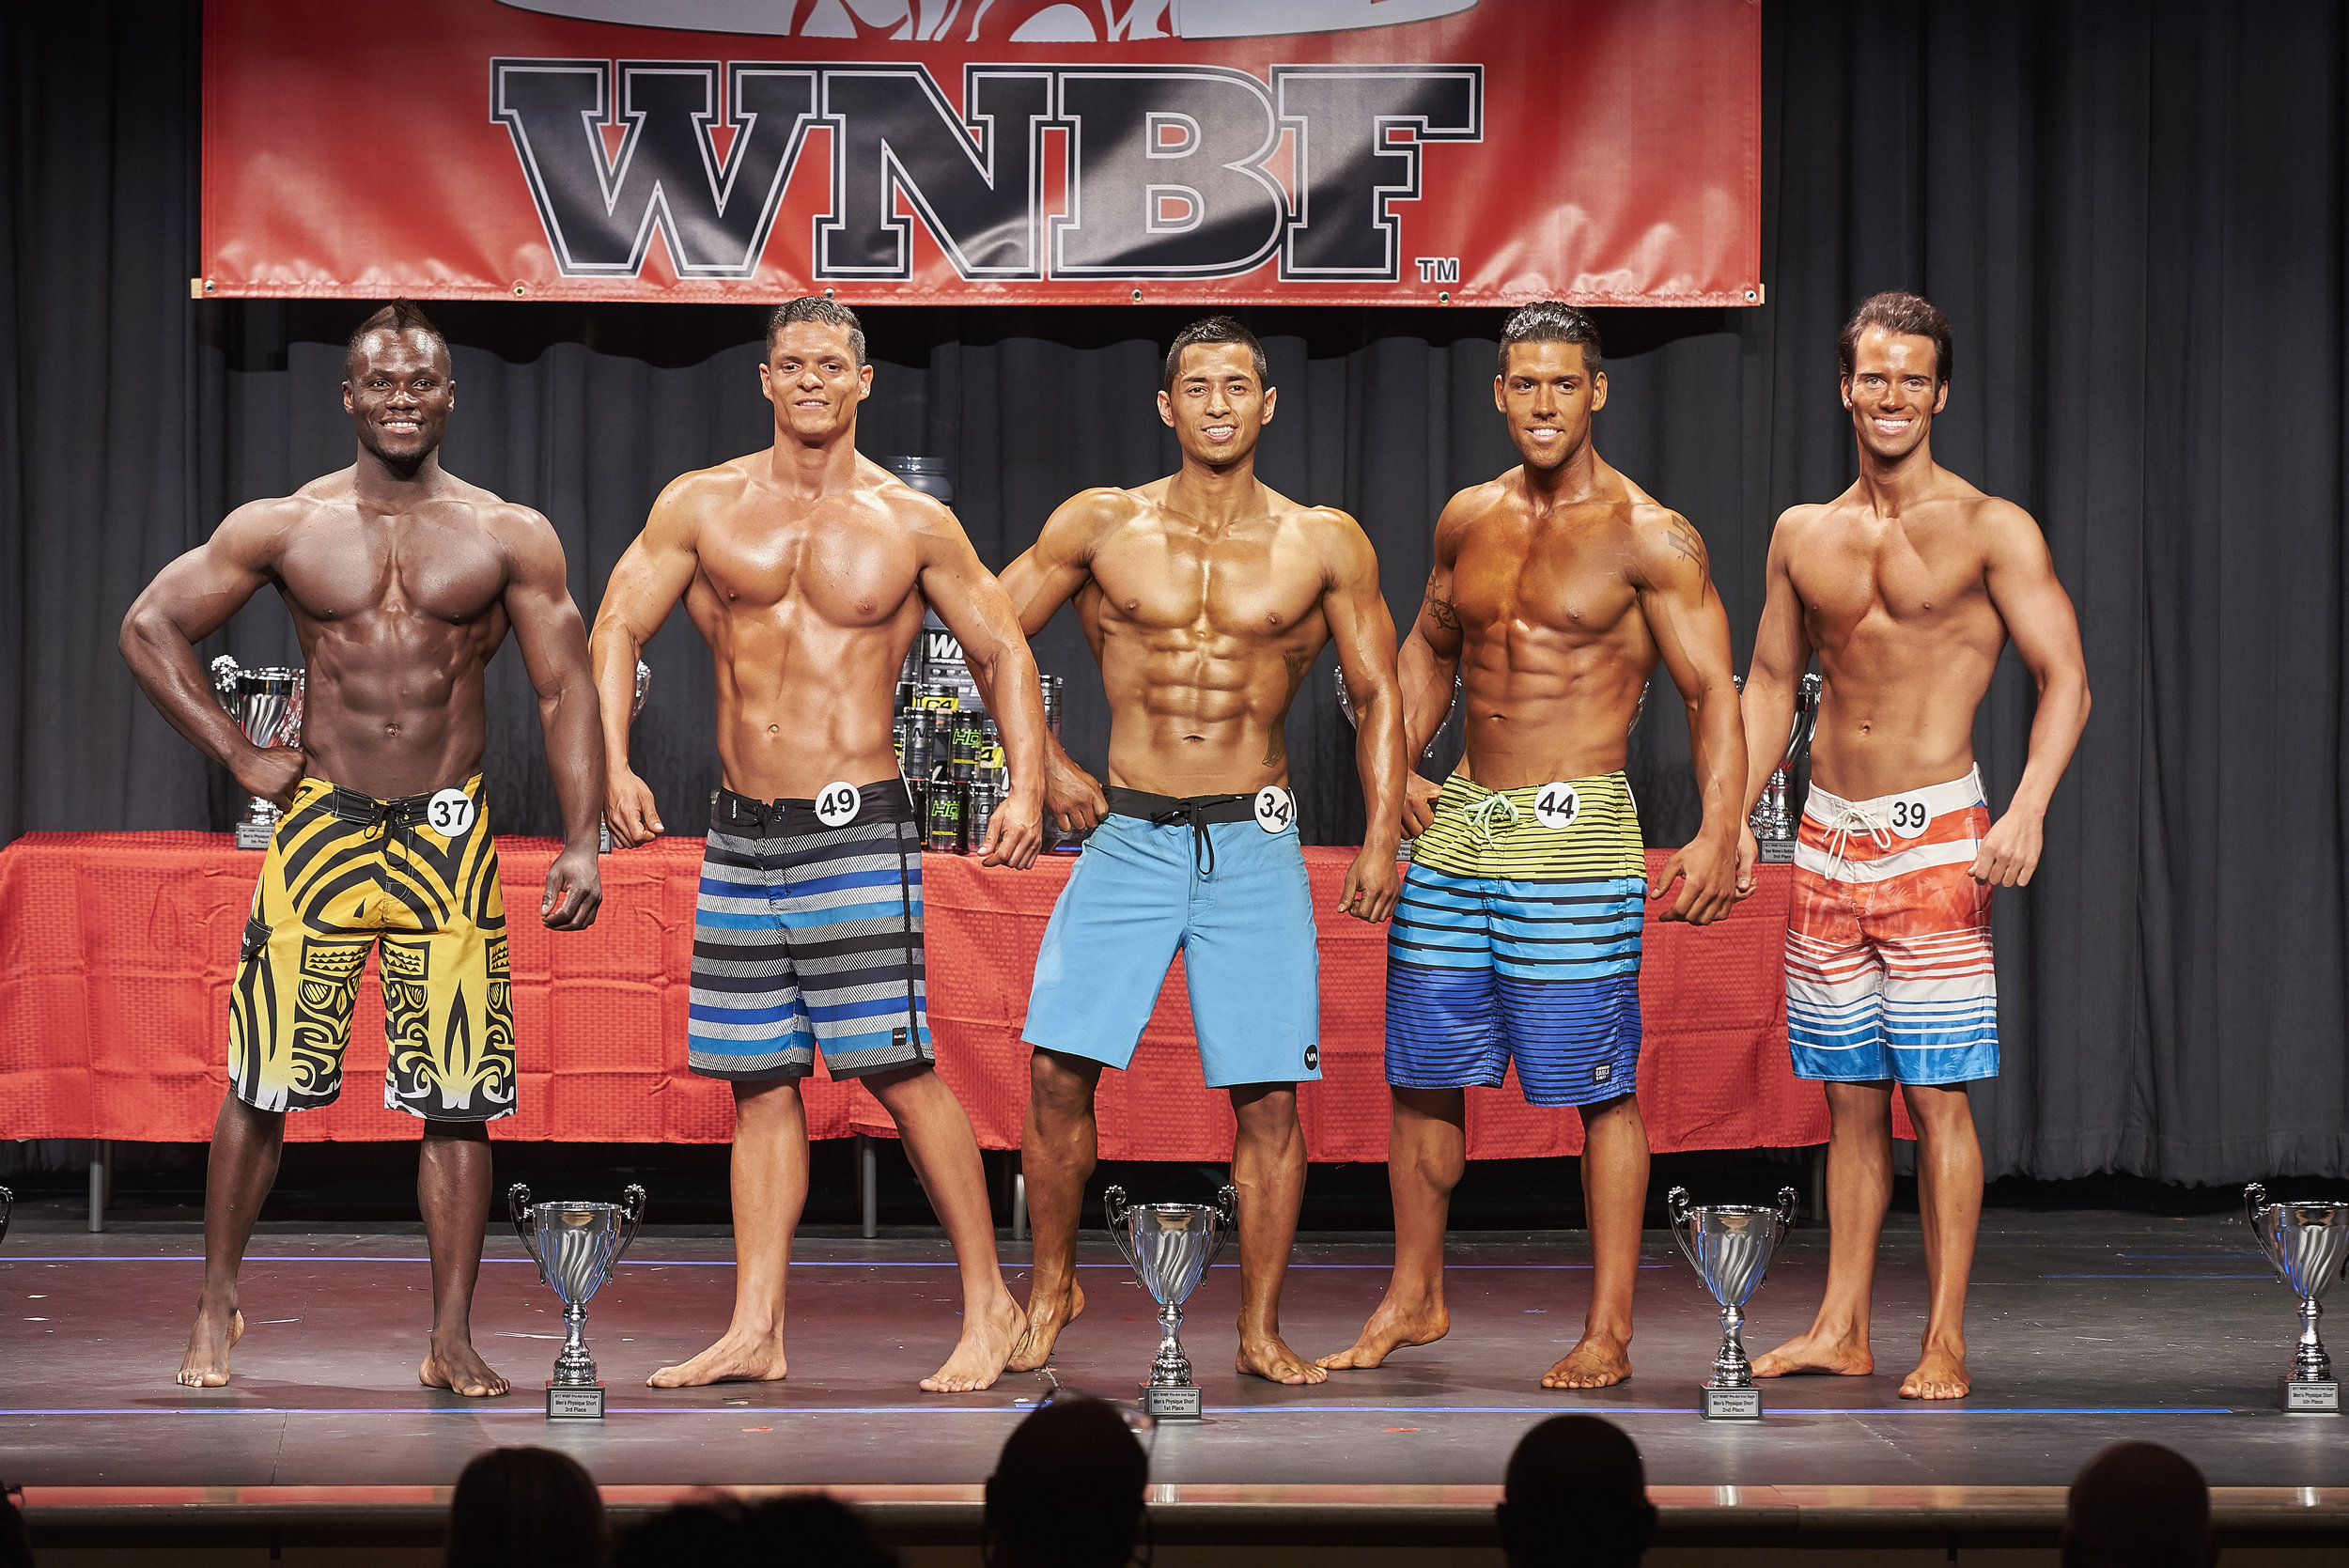 Open Mens Physique Short Awards.jpg